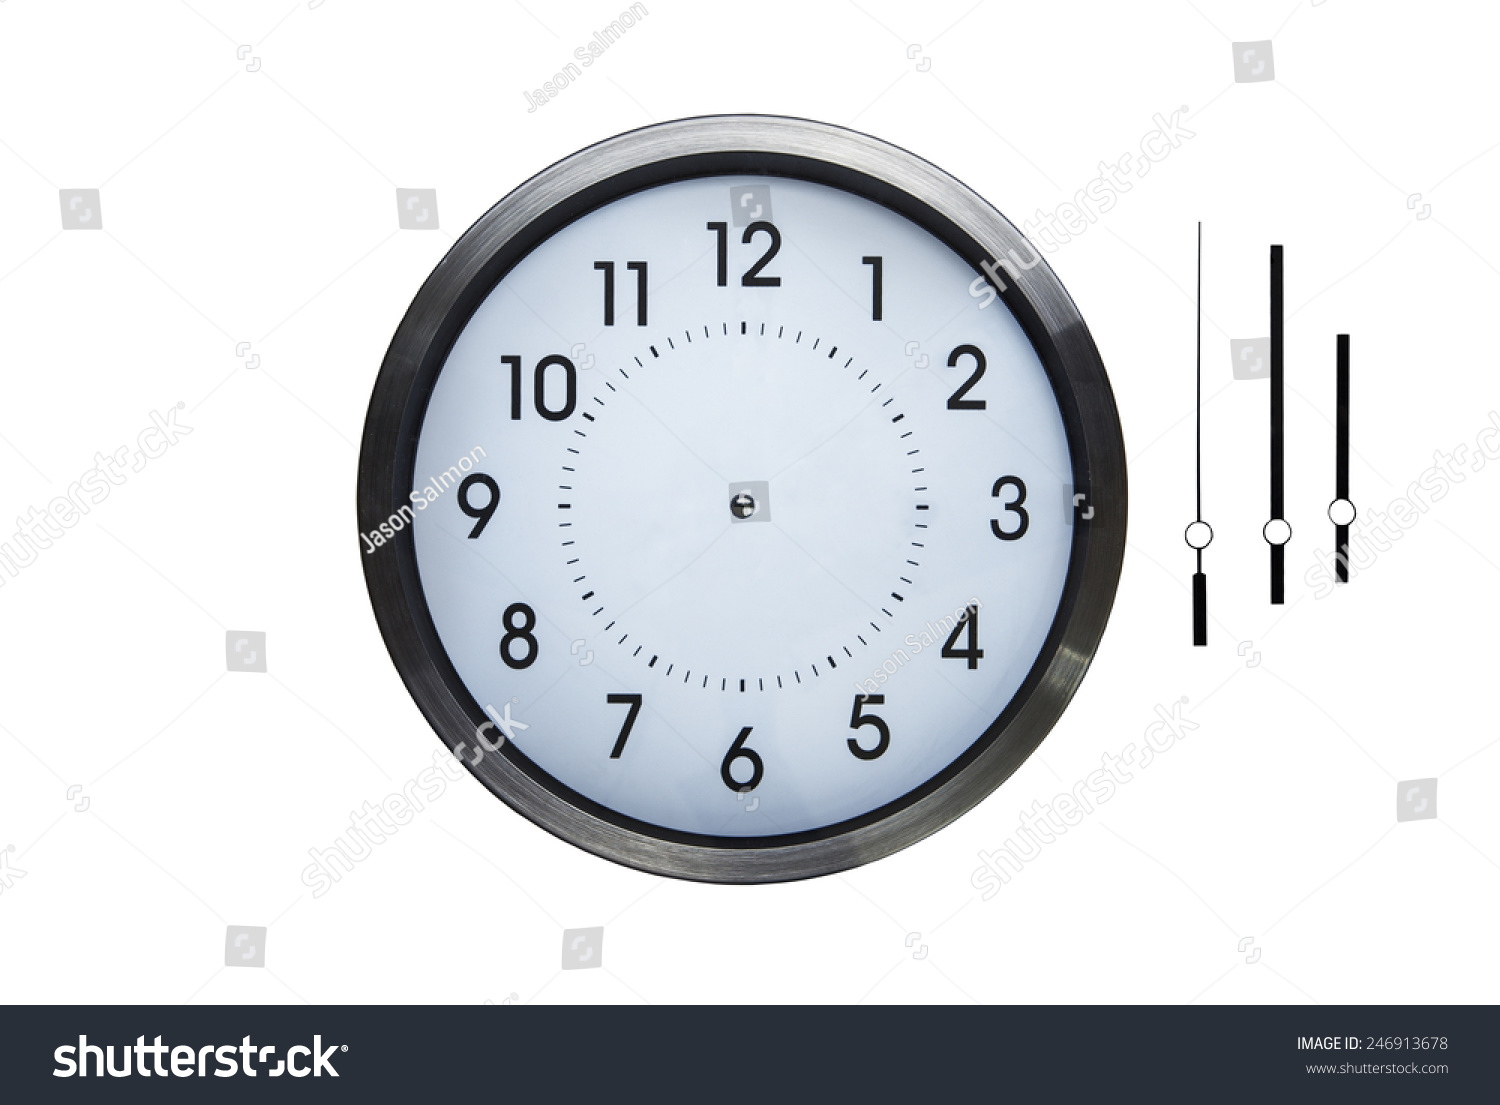 Wall Clock Without Hands You Can Stock Photo 246913678 Shutterstock